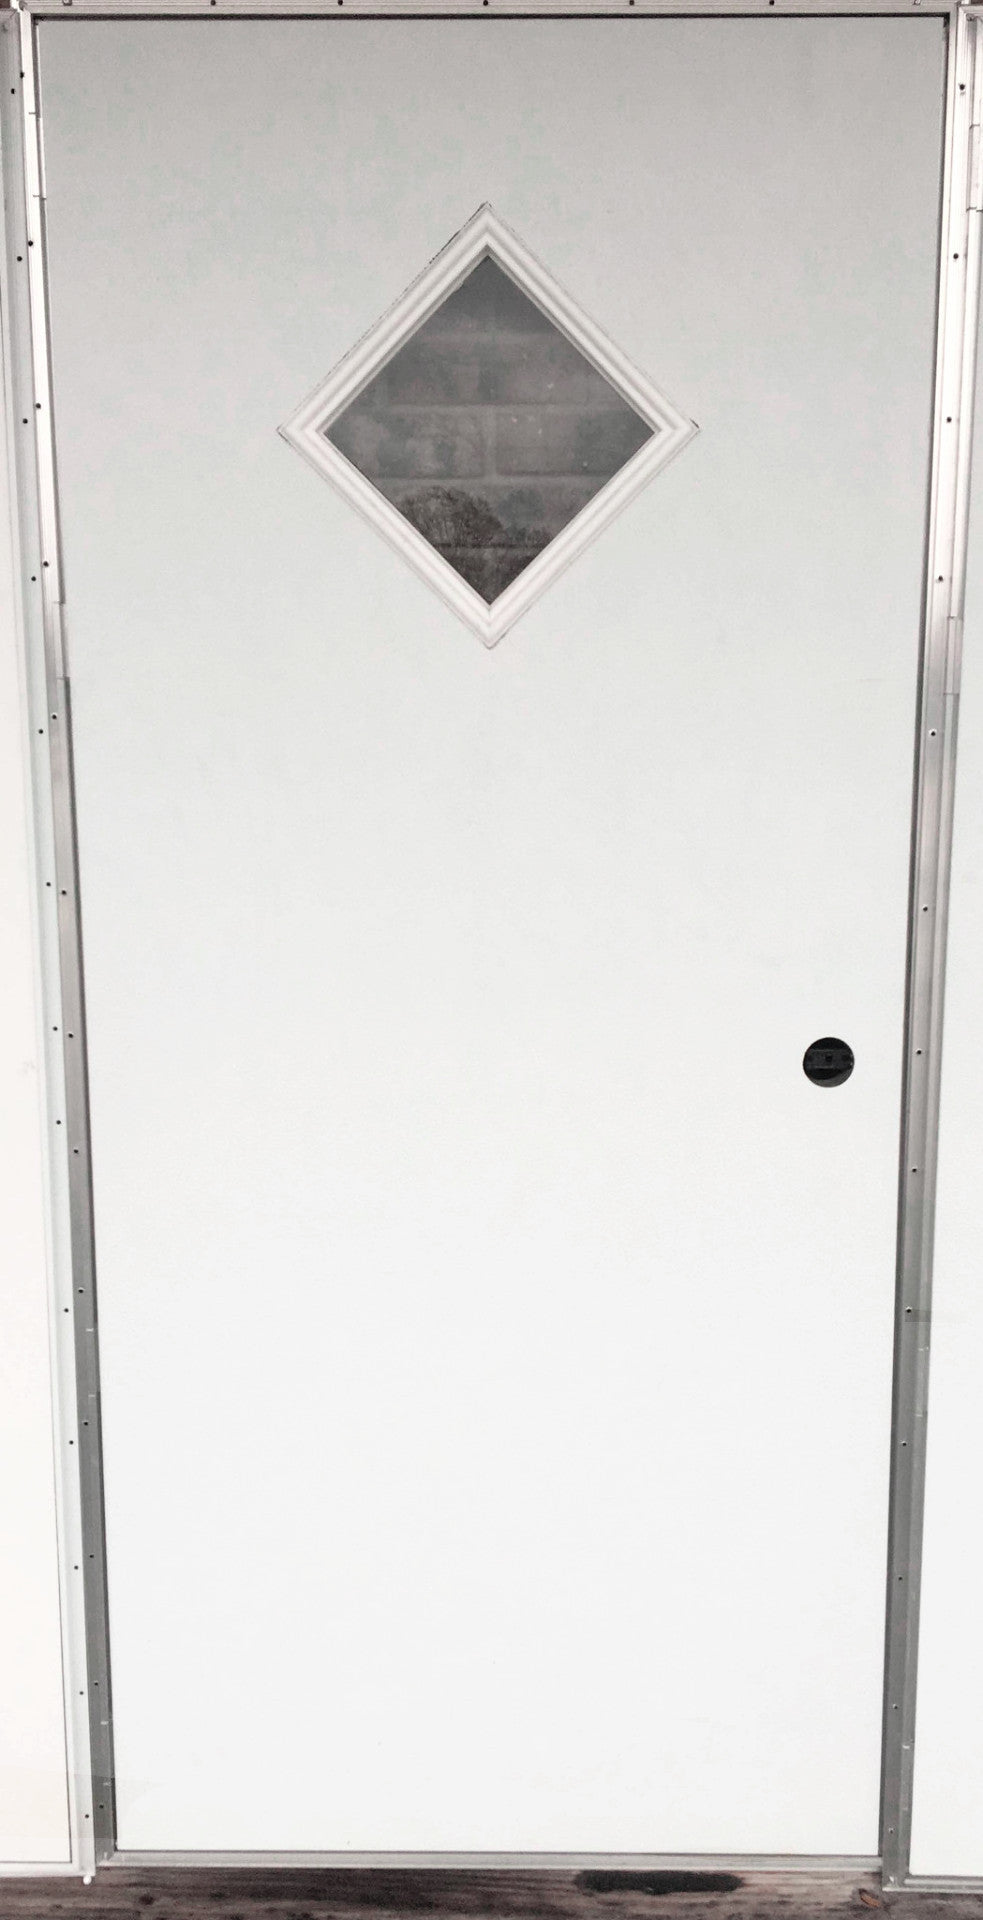 Elixir Series 200 Exterior Outswing Door With Diamond